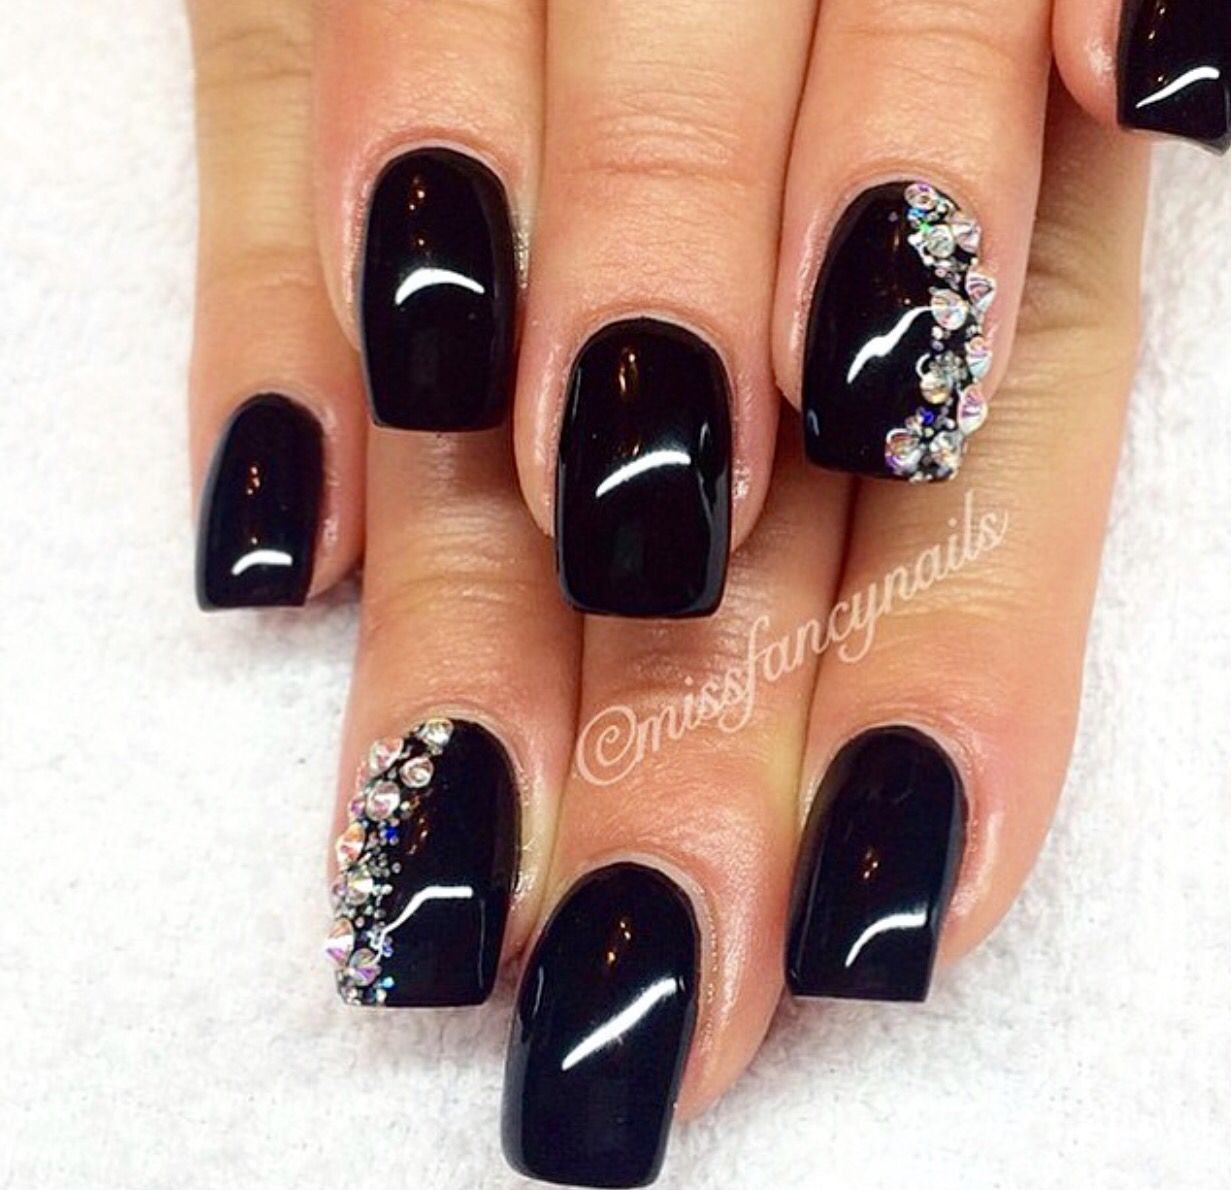 Pin by Debra Perry on Nails   Pinterest   Gray nails and Black nails